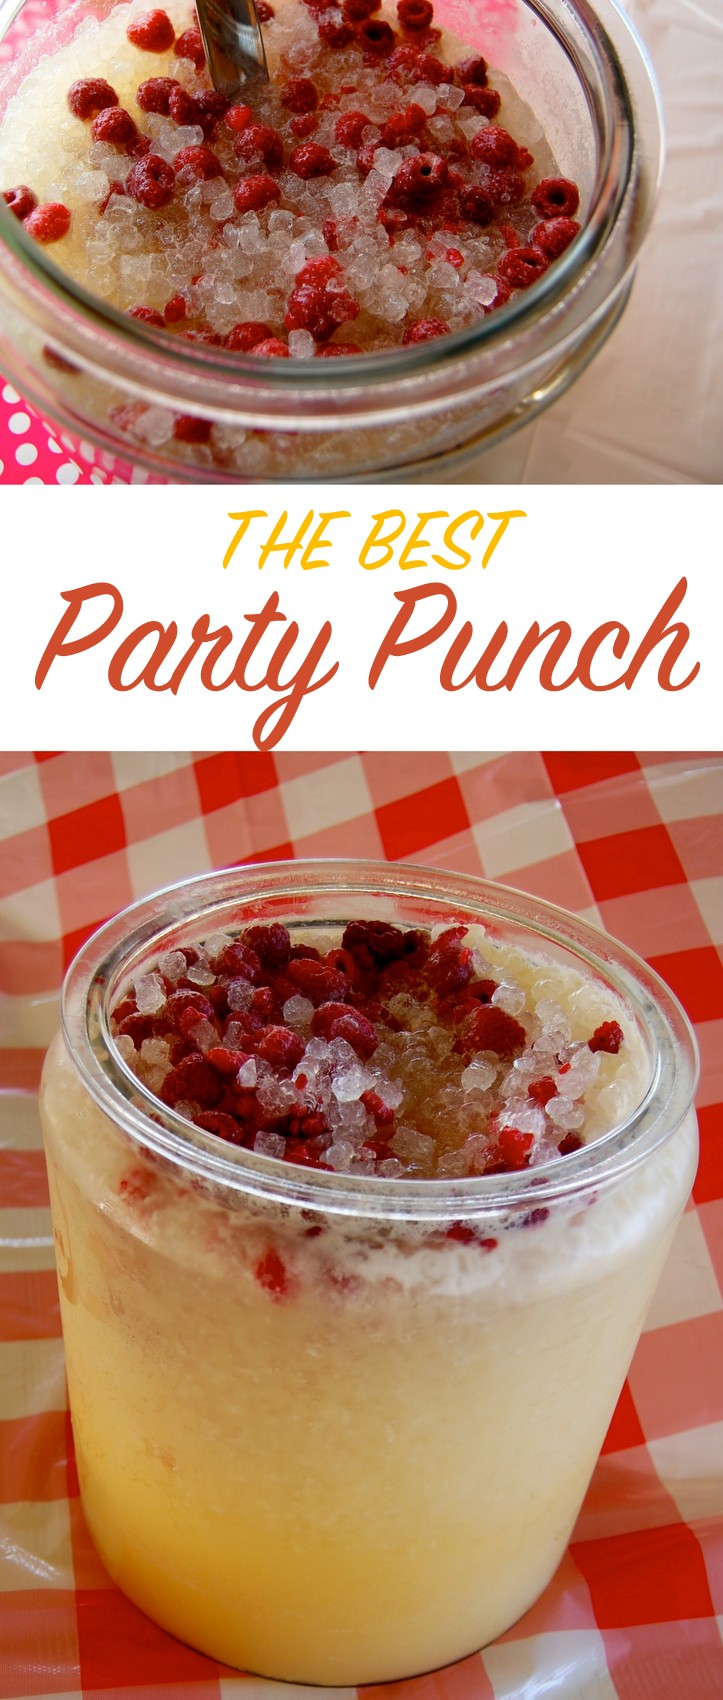 The best party punch! Great for a crowd - recipe on NoBiggie.net